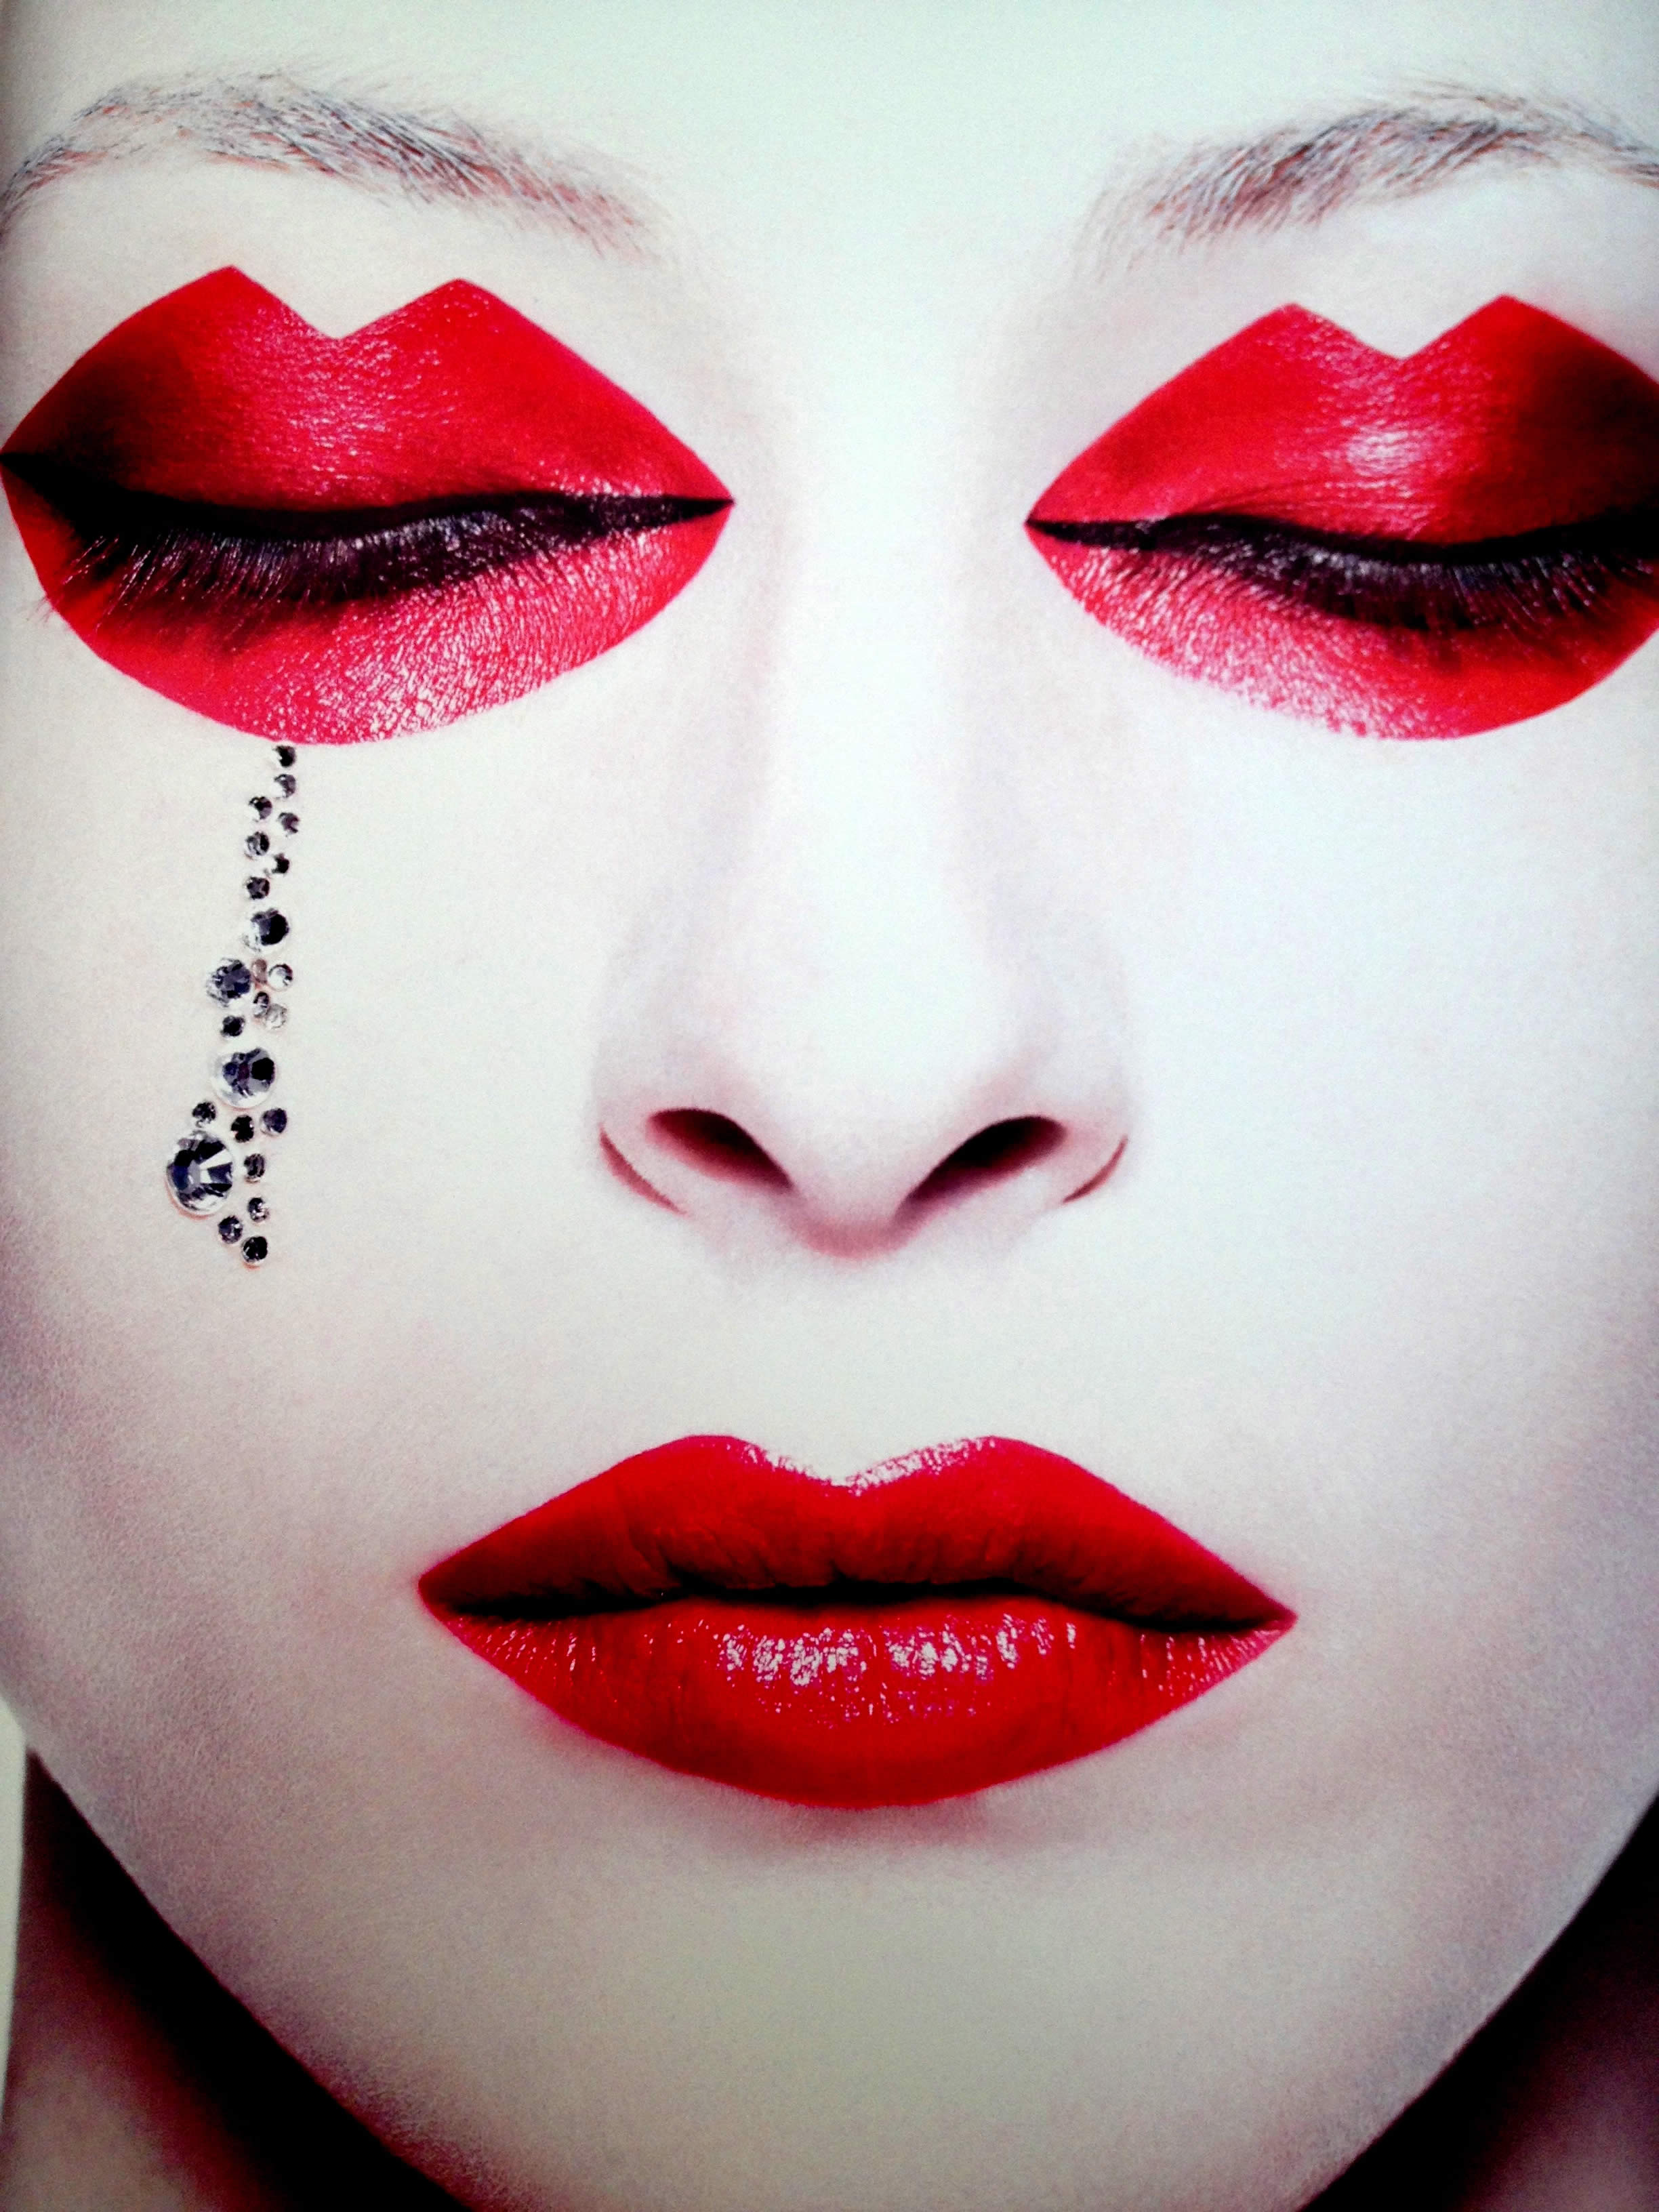 Eccentric Makeup And Photography By Rankin Scene360